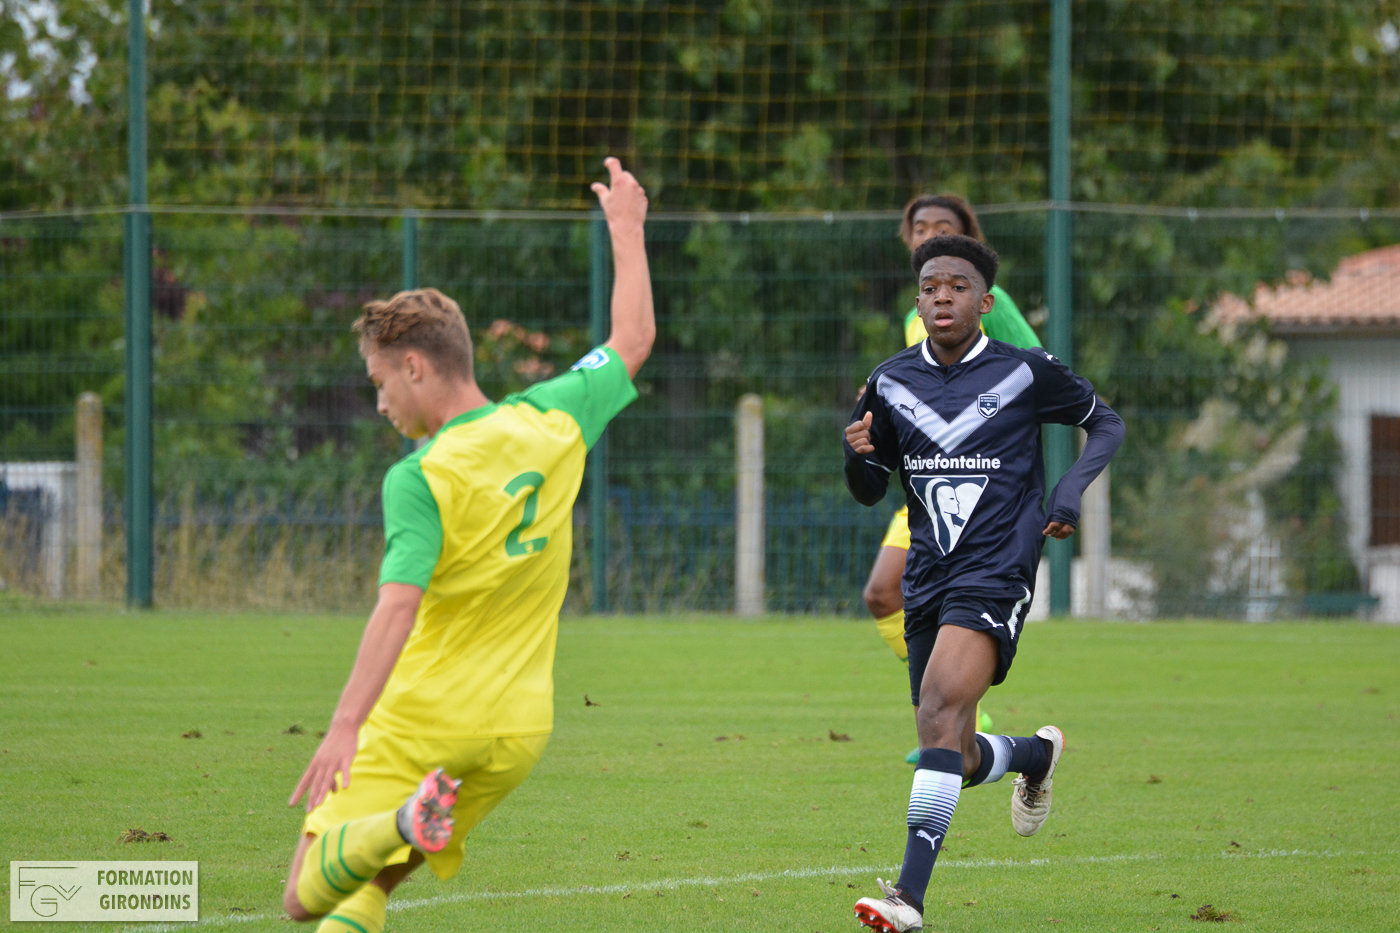 Cfa Girondins : Bordeaux cale à Poitiers (1-1) - Formation Girondins